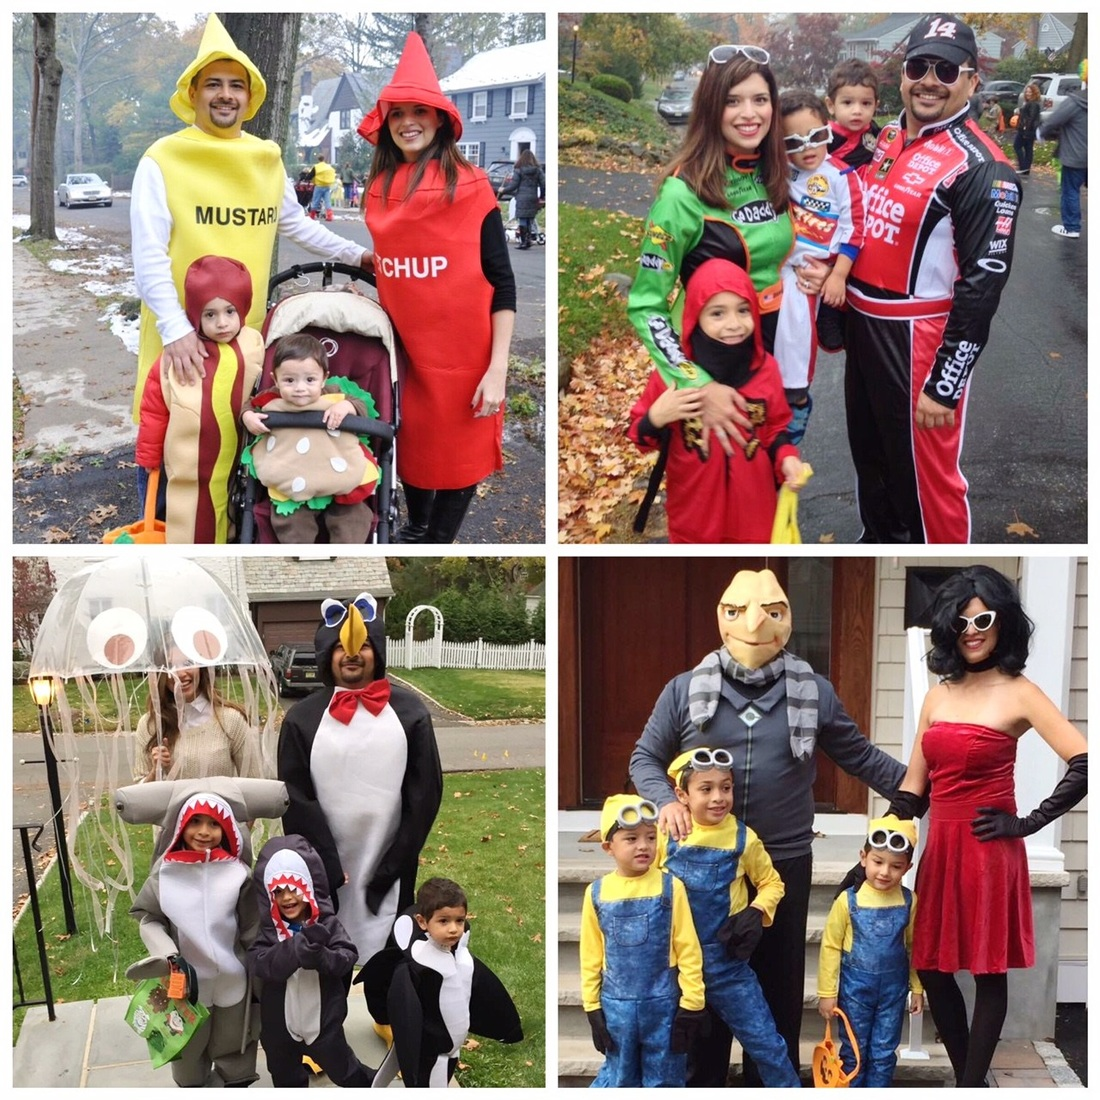 Alicia Gibbs: 12 DIY Family Themed Costumes - Condiments, Racecar Drivers, Under the Sea + Minions